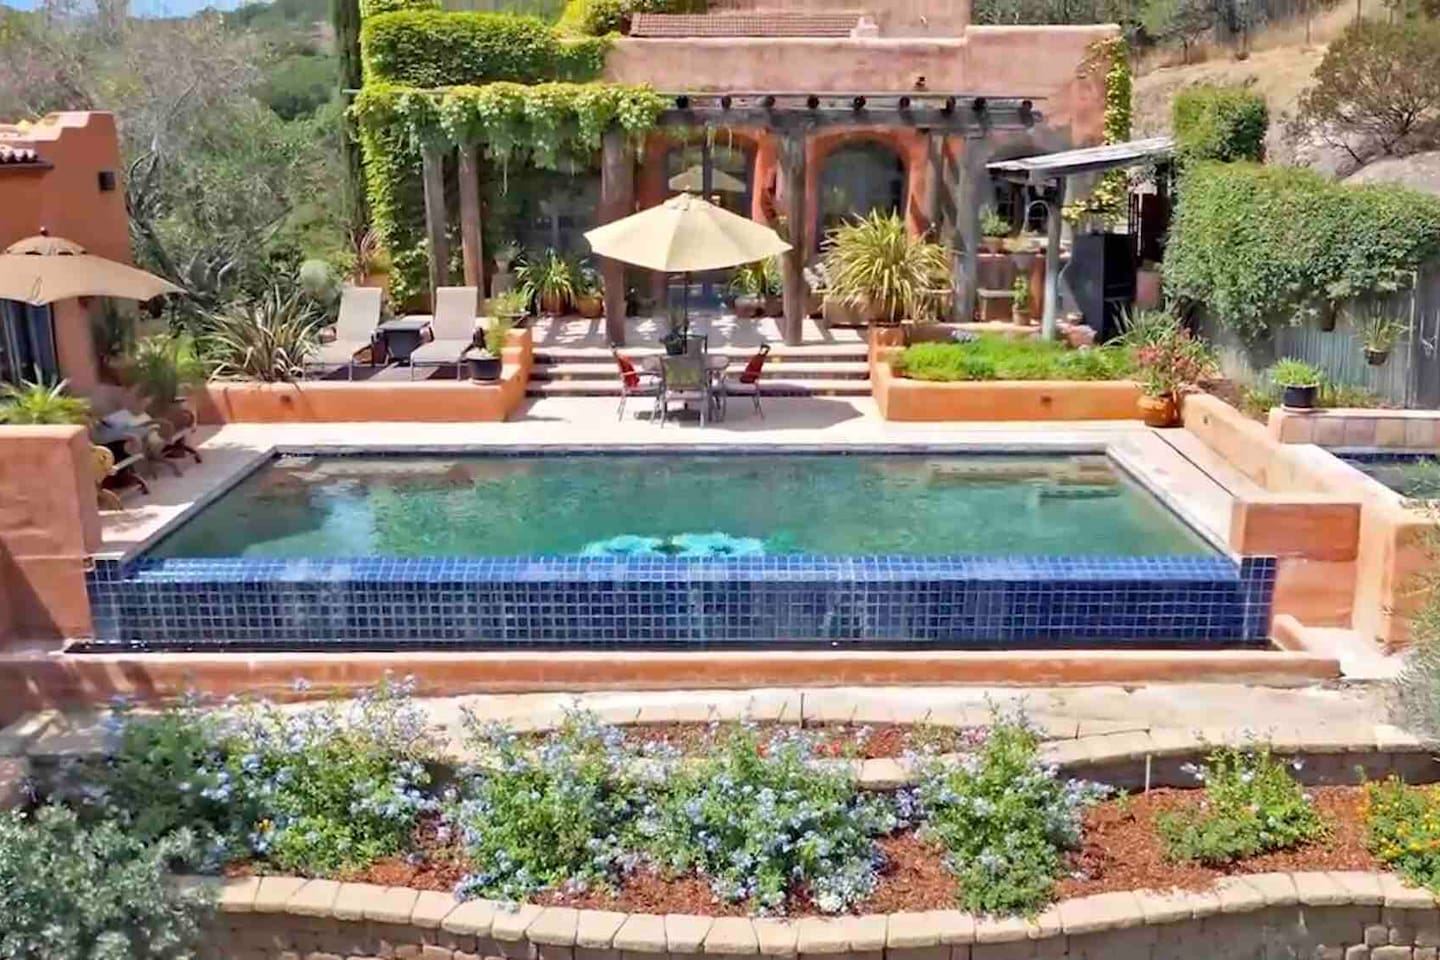 Extensive outside living space with lush vegetation and flowers. Infinity pool with heated spa' enjoy with entire home rental as well as private villa rental